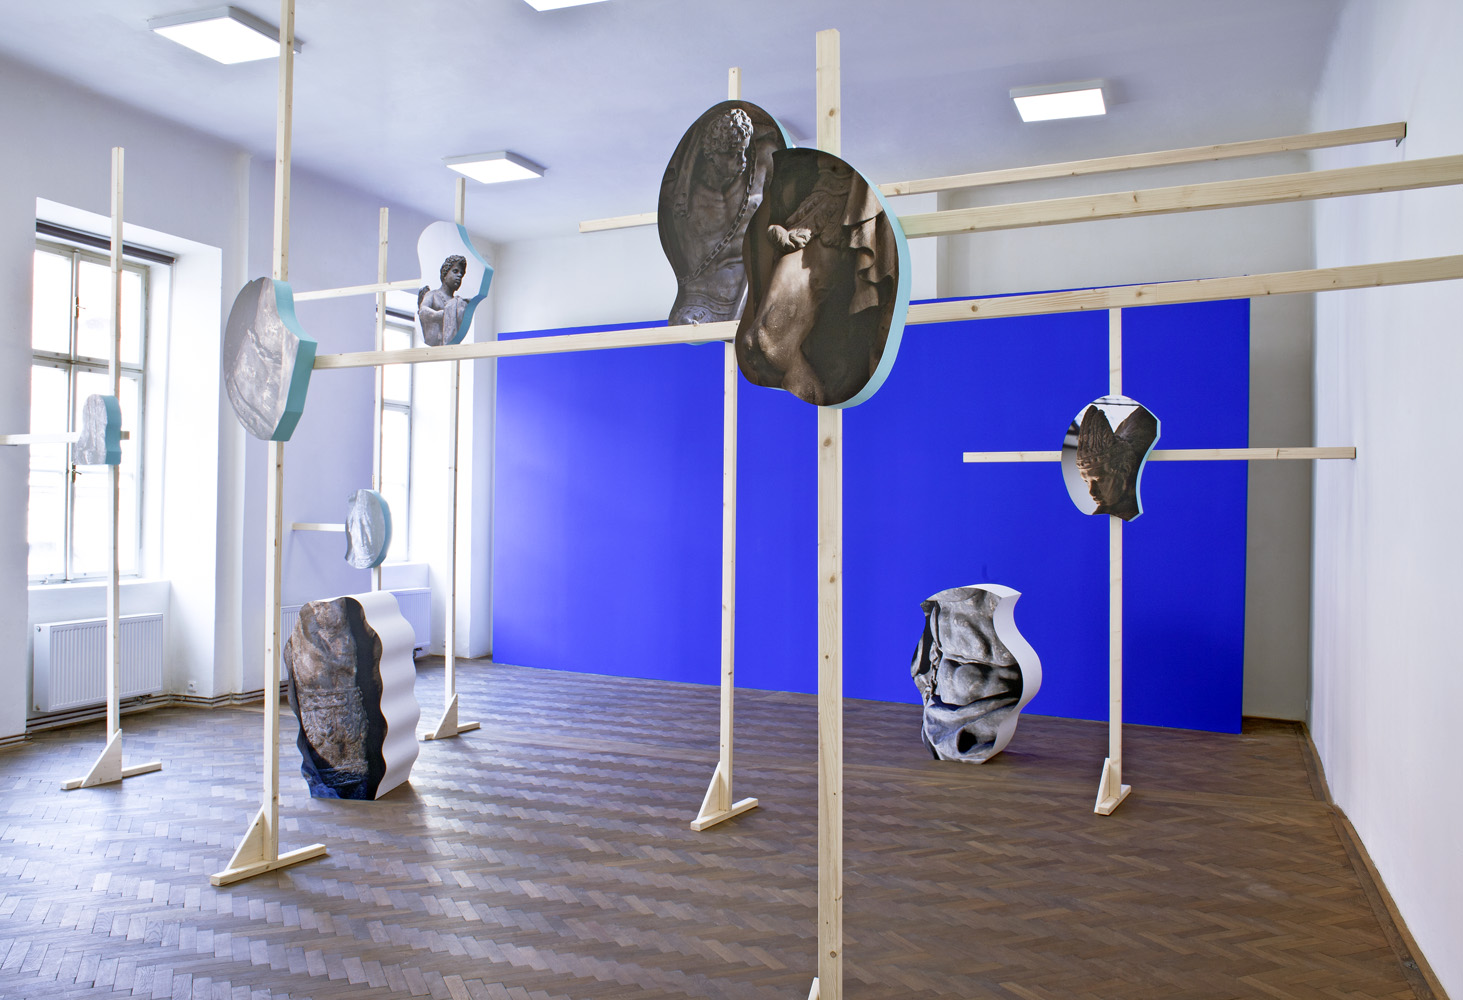 Bluescreen for Brokoff 2016, installation, direct print on forex, extruded polystyrene, various dimensions